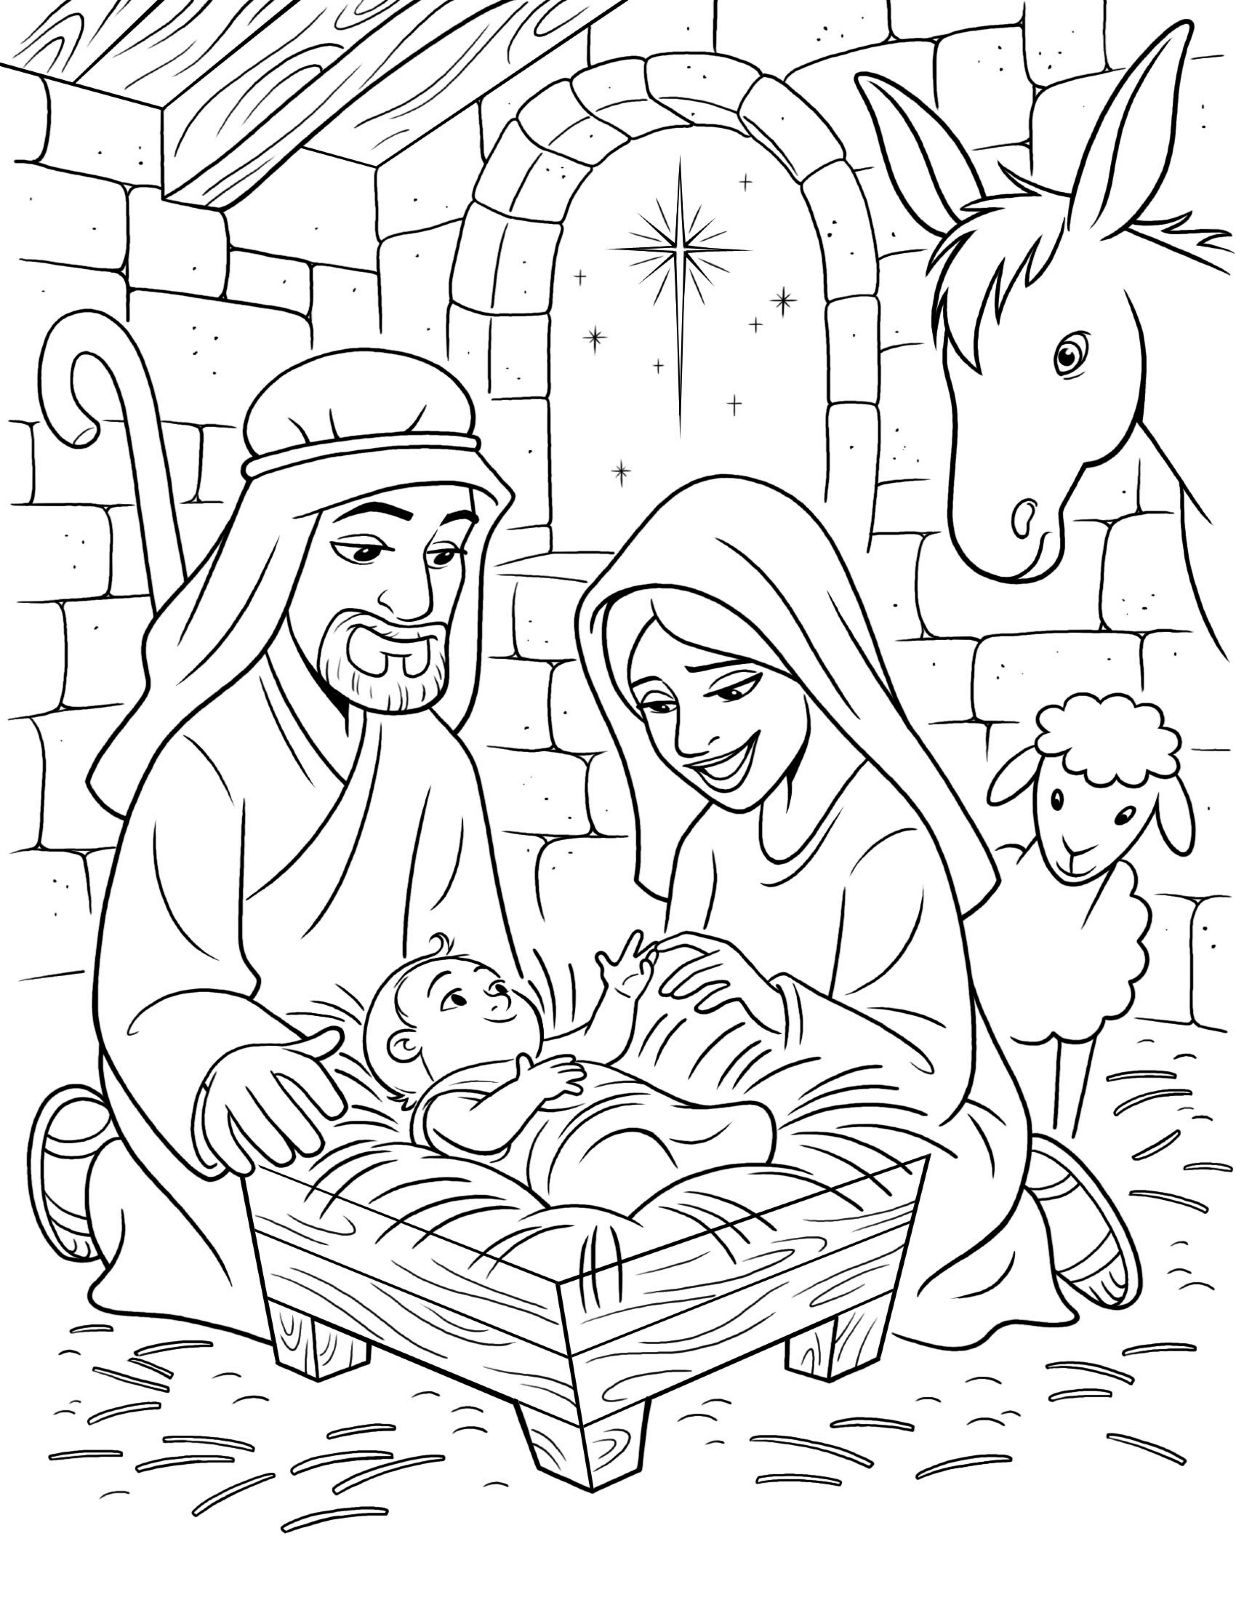 Lds Coloring Pages With The Birth Of Christ Coloring For Kids